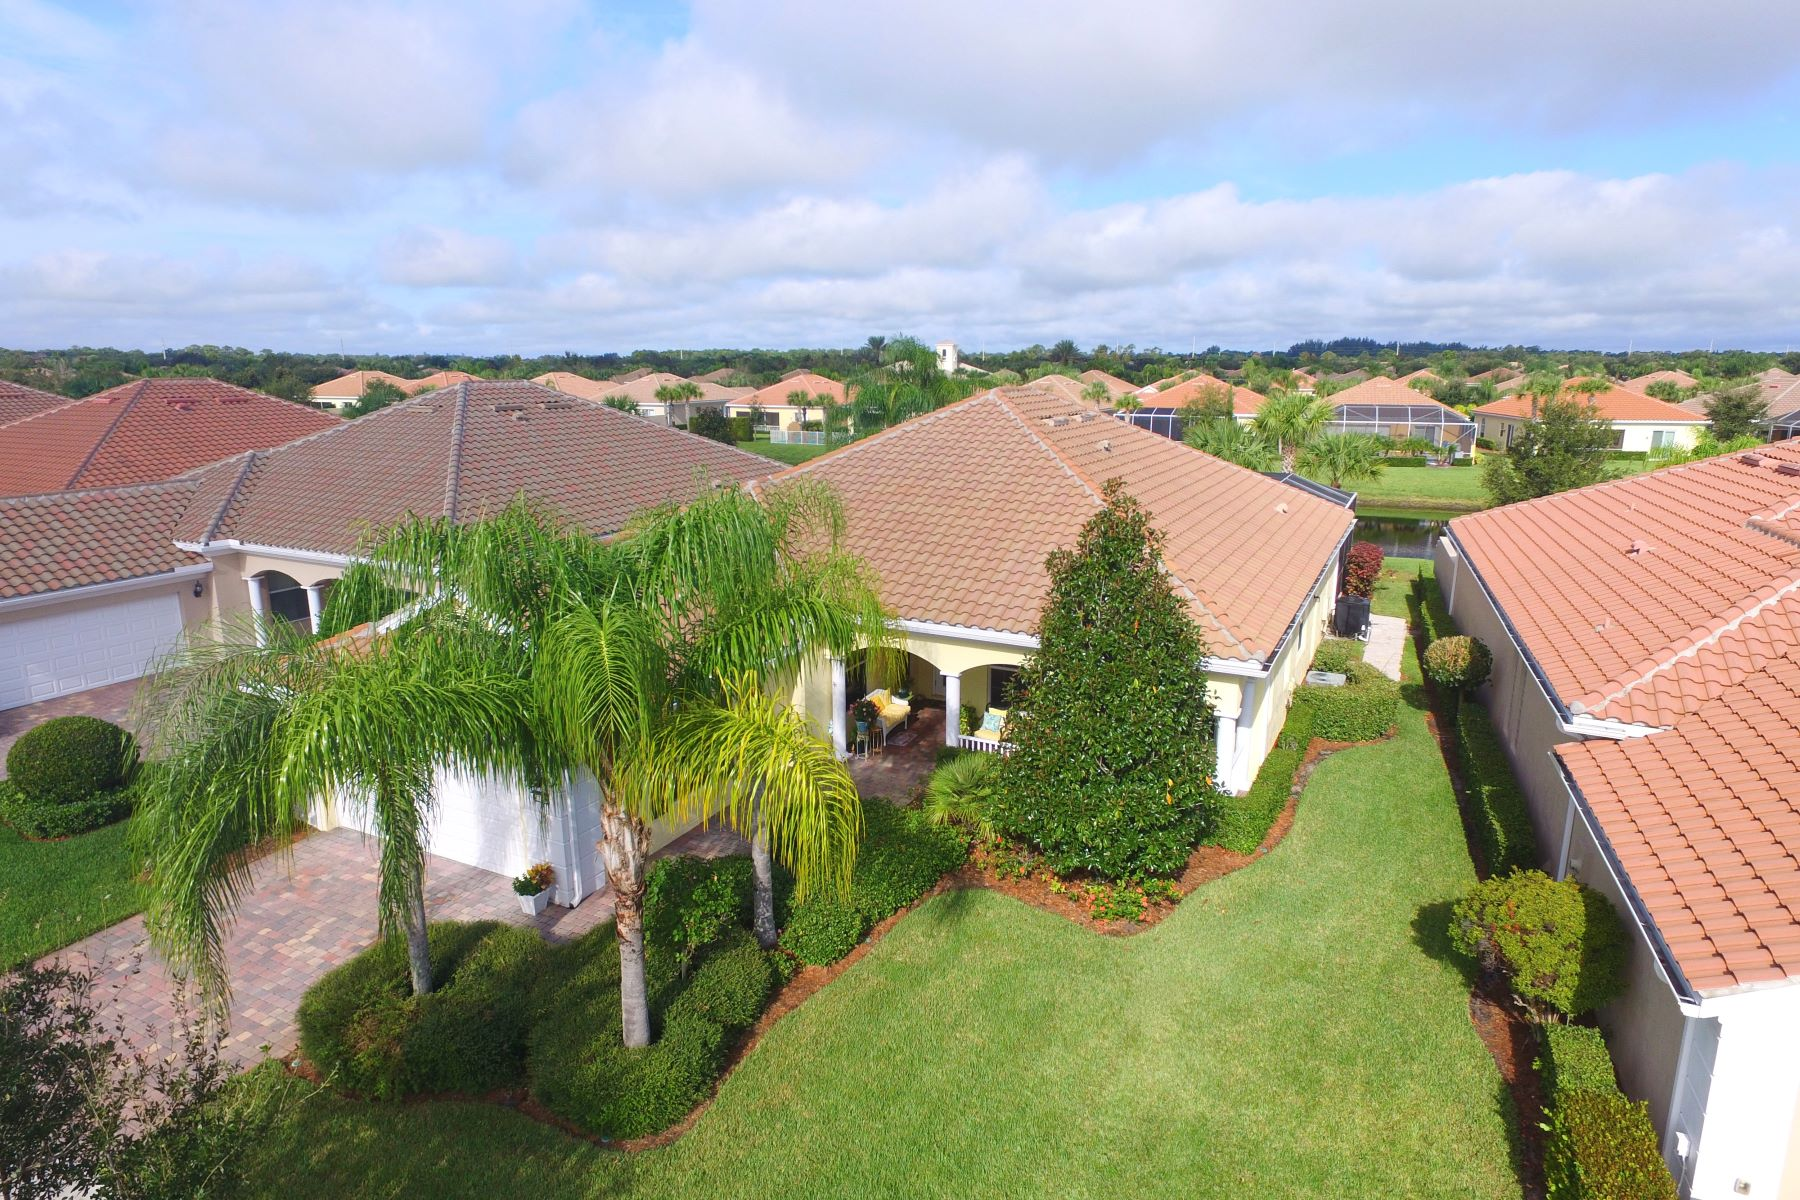 Single Family Homes for Sale at Spacious Lakeside Home 5180 Formosa Circle Vero Beach, Florida 32967 United States